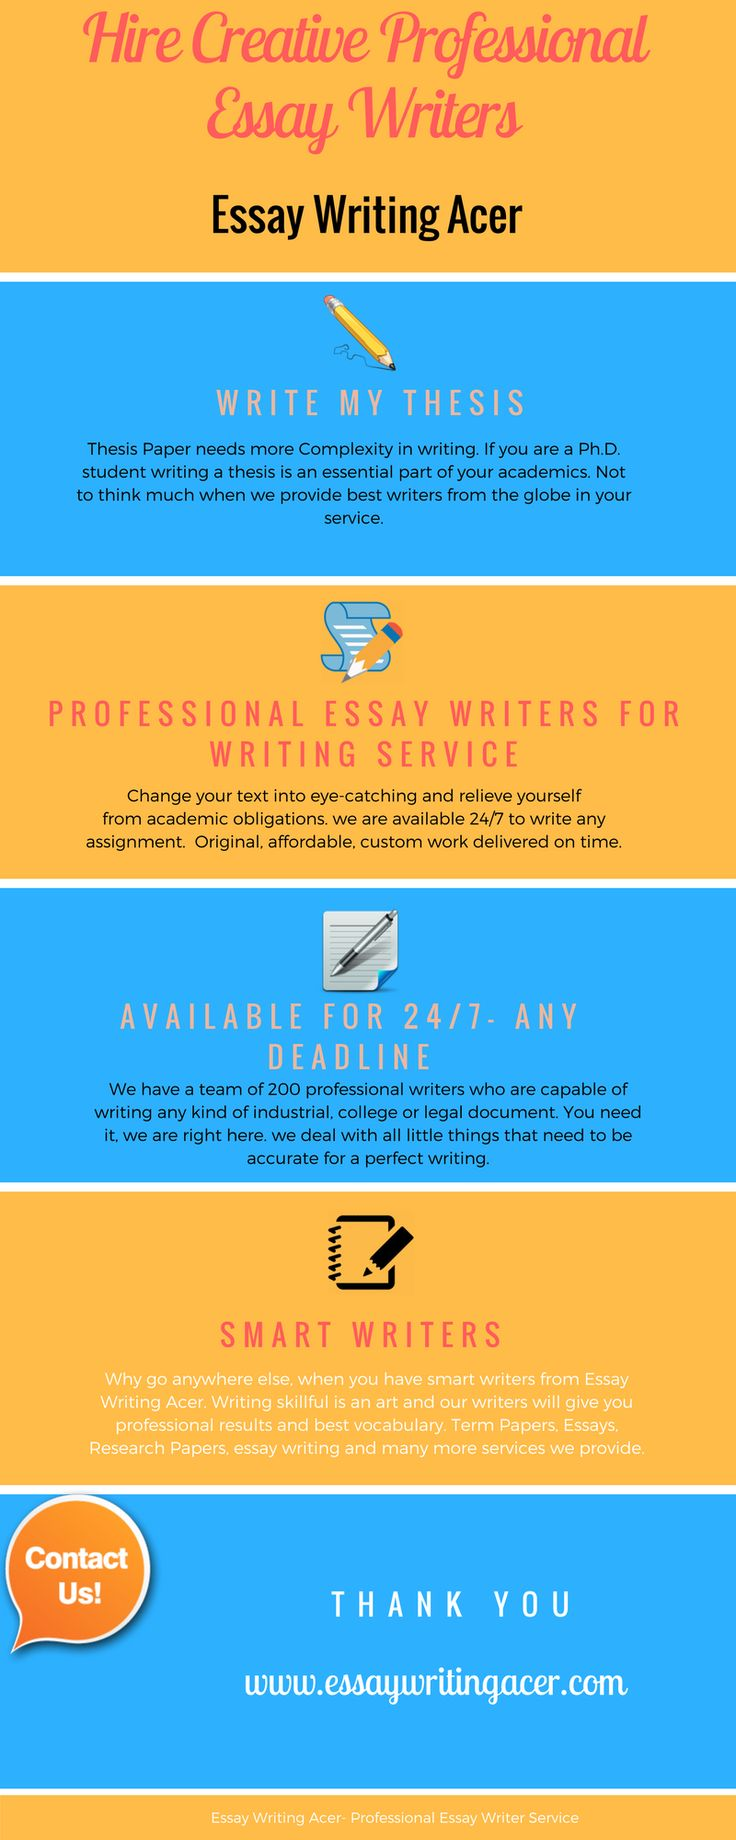 best professional essay writer service images  if you are looking for the professional essay writer service you are not alone